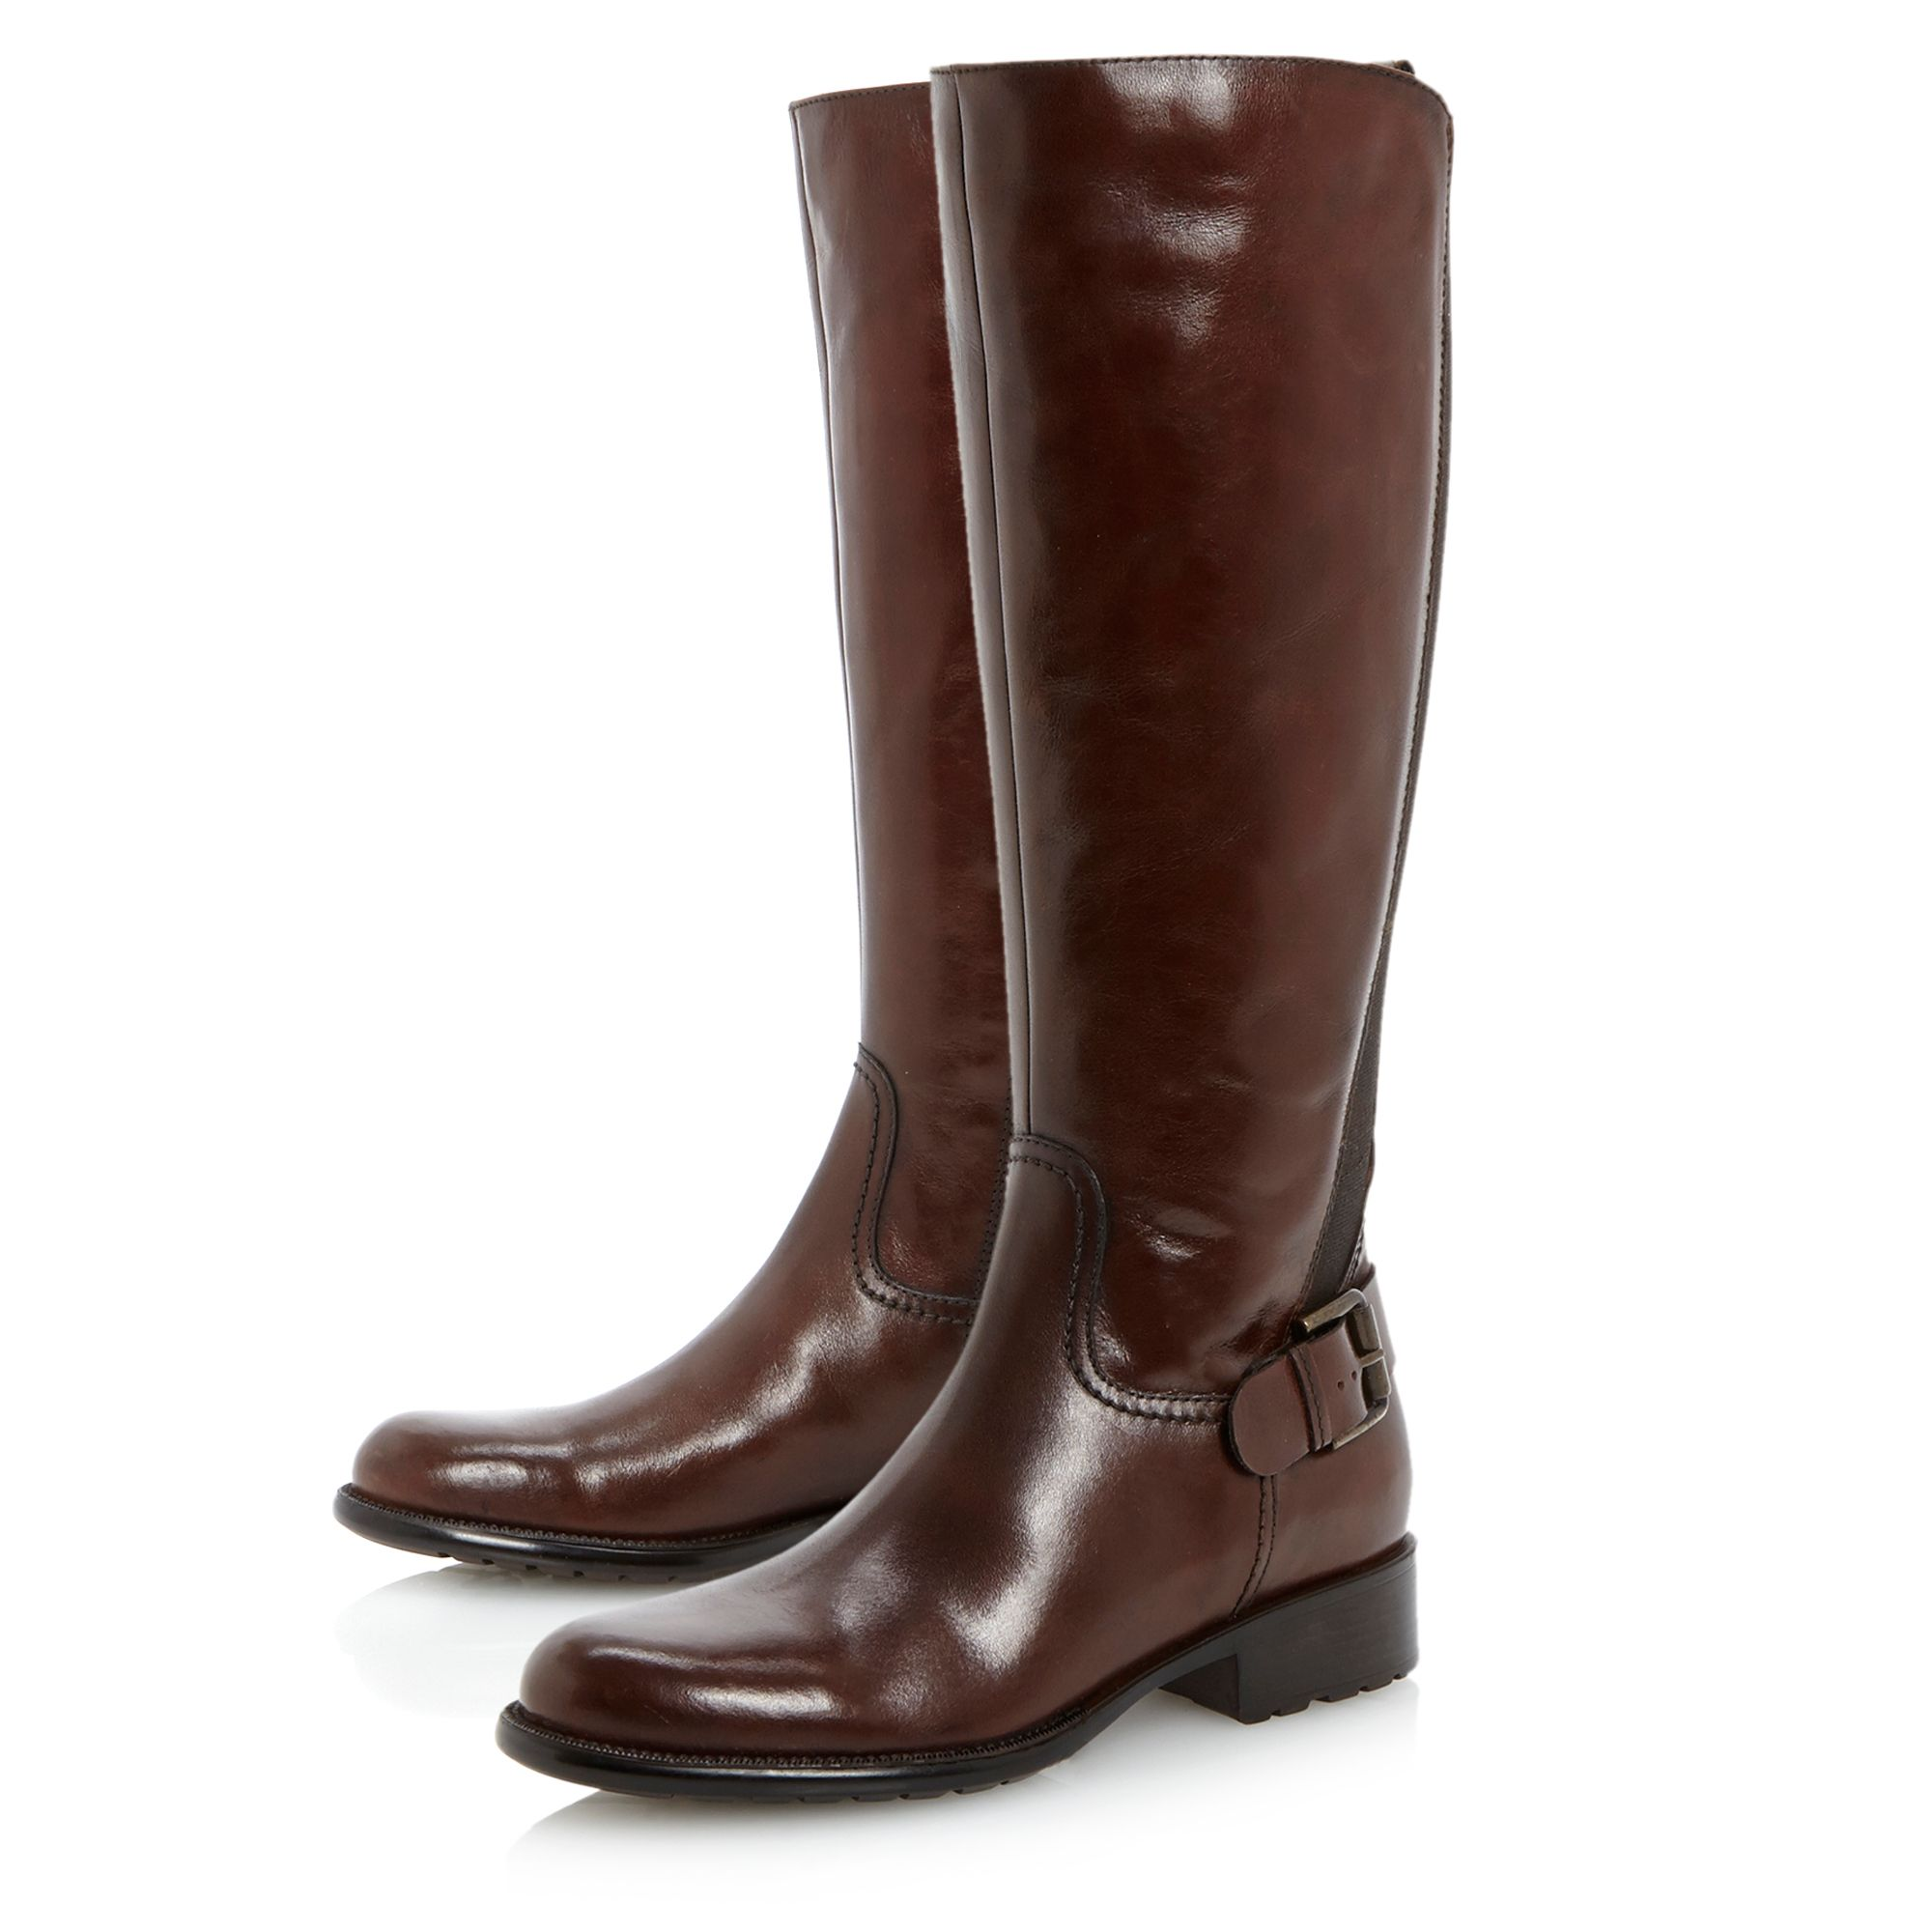 Toffee buckle cleated riding boots